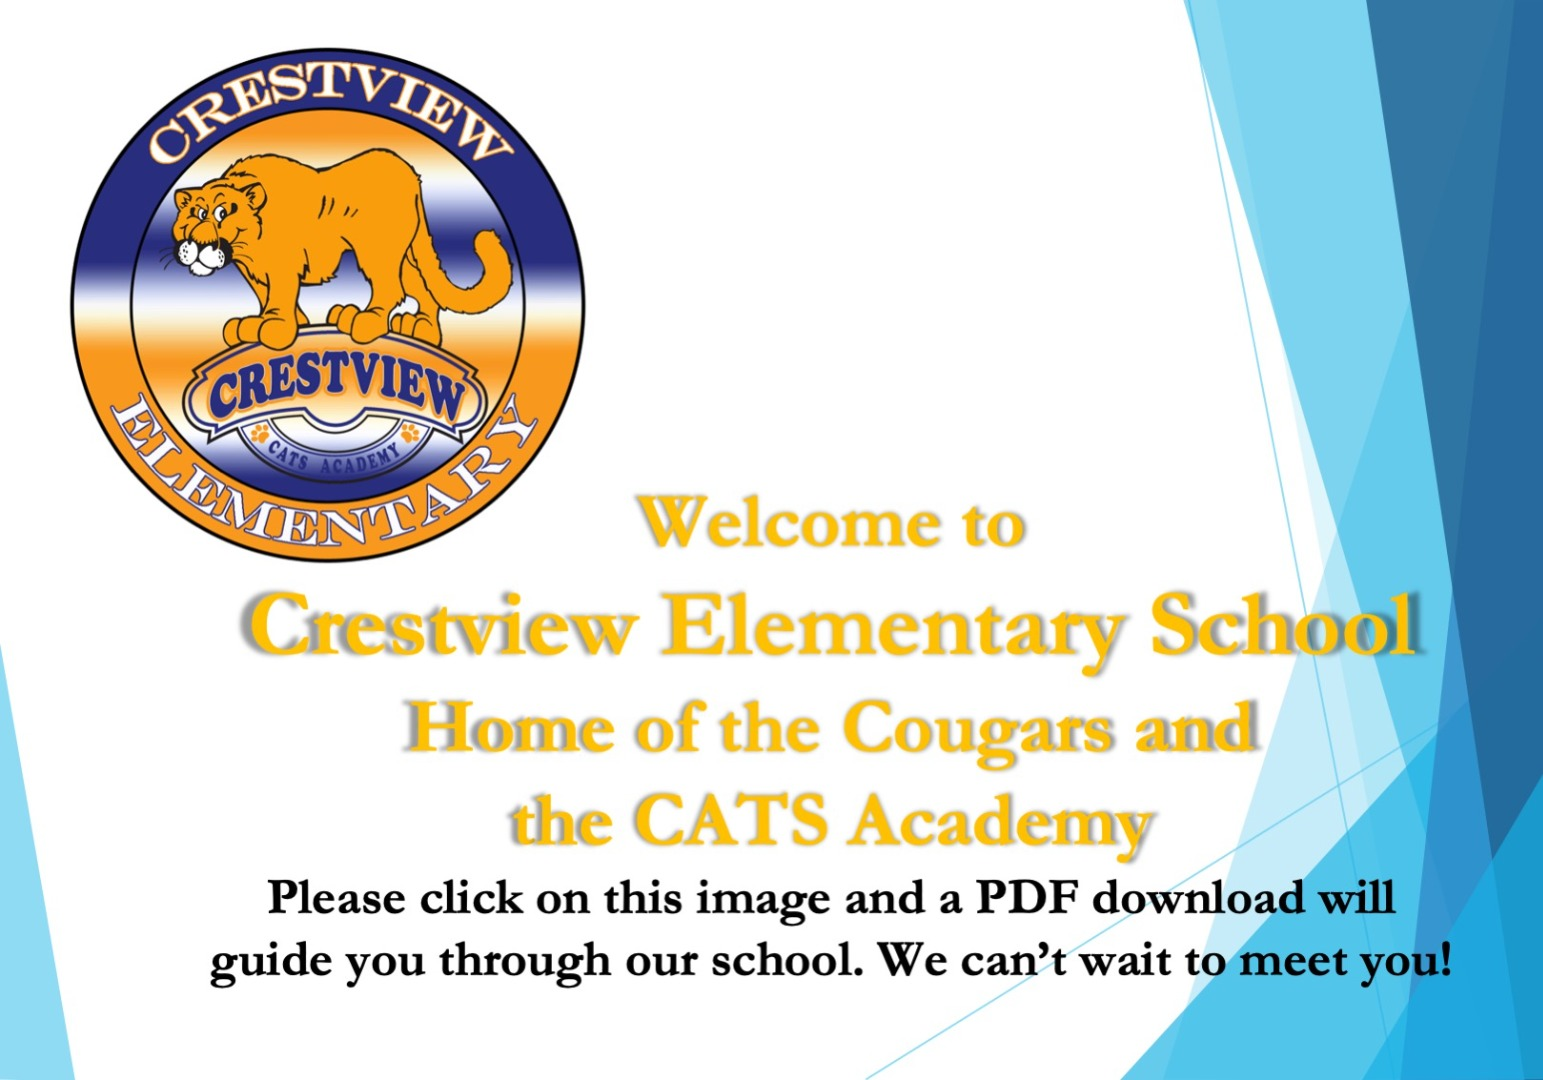 Welcome to Crestview